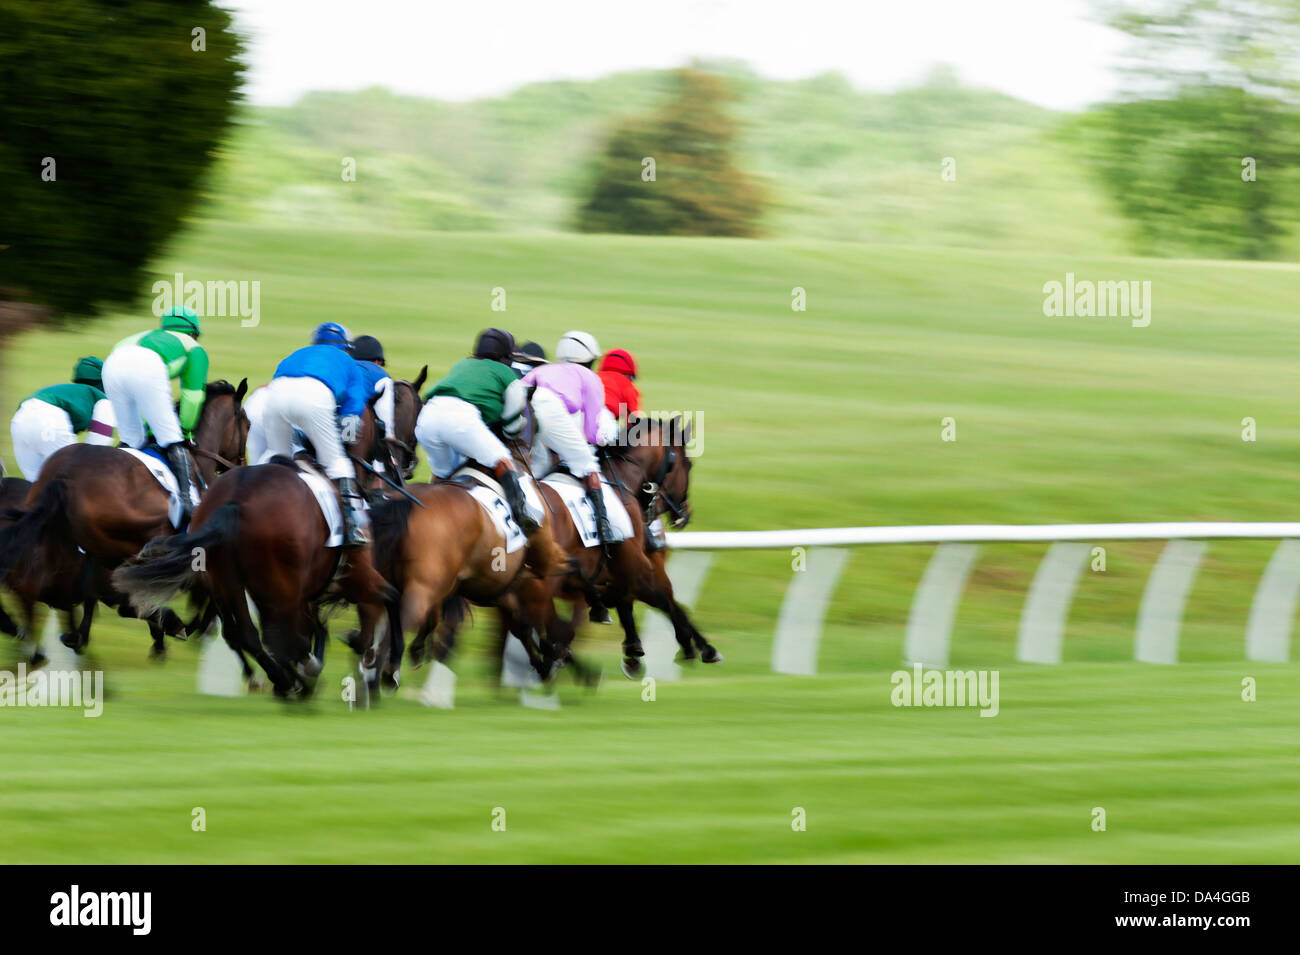 A group of Race horses running during a steeplechase race Stock Photo